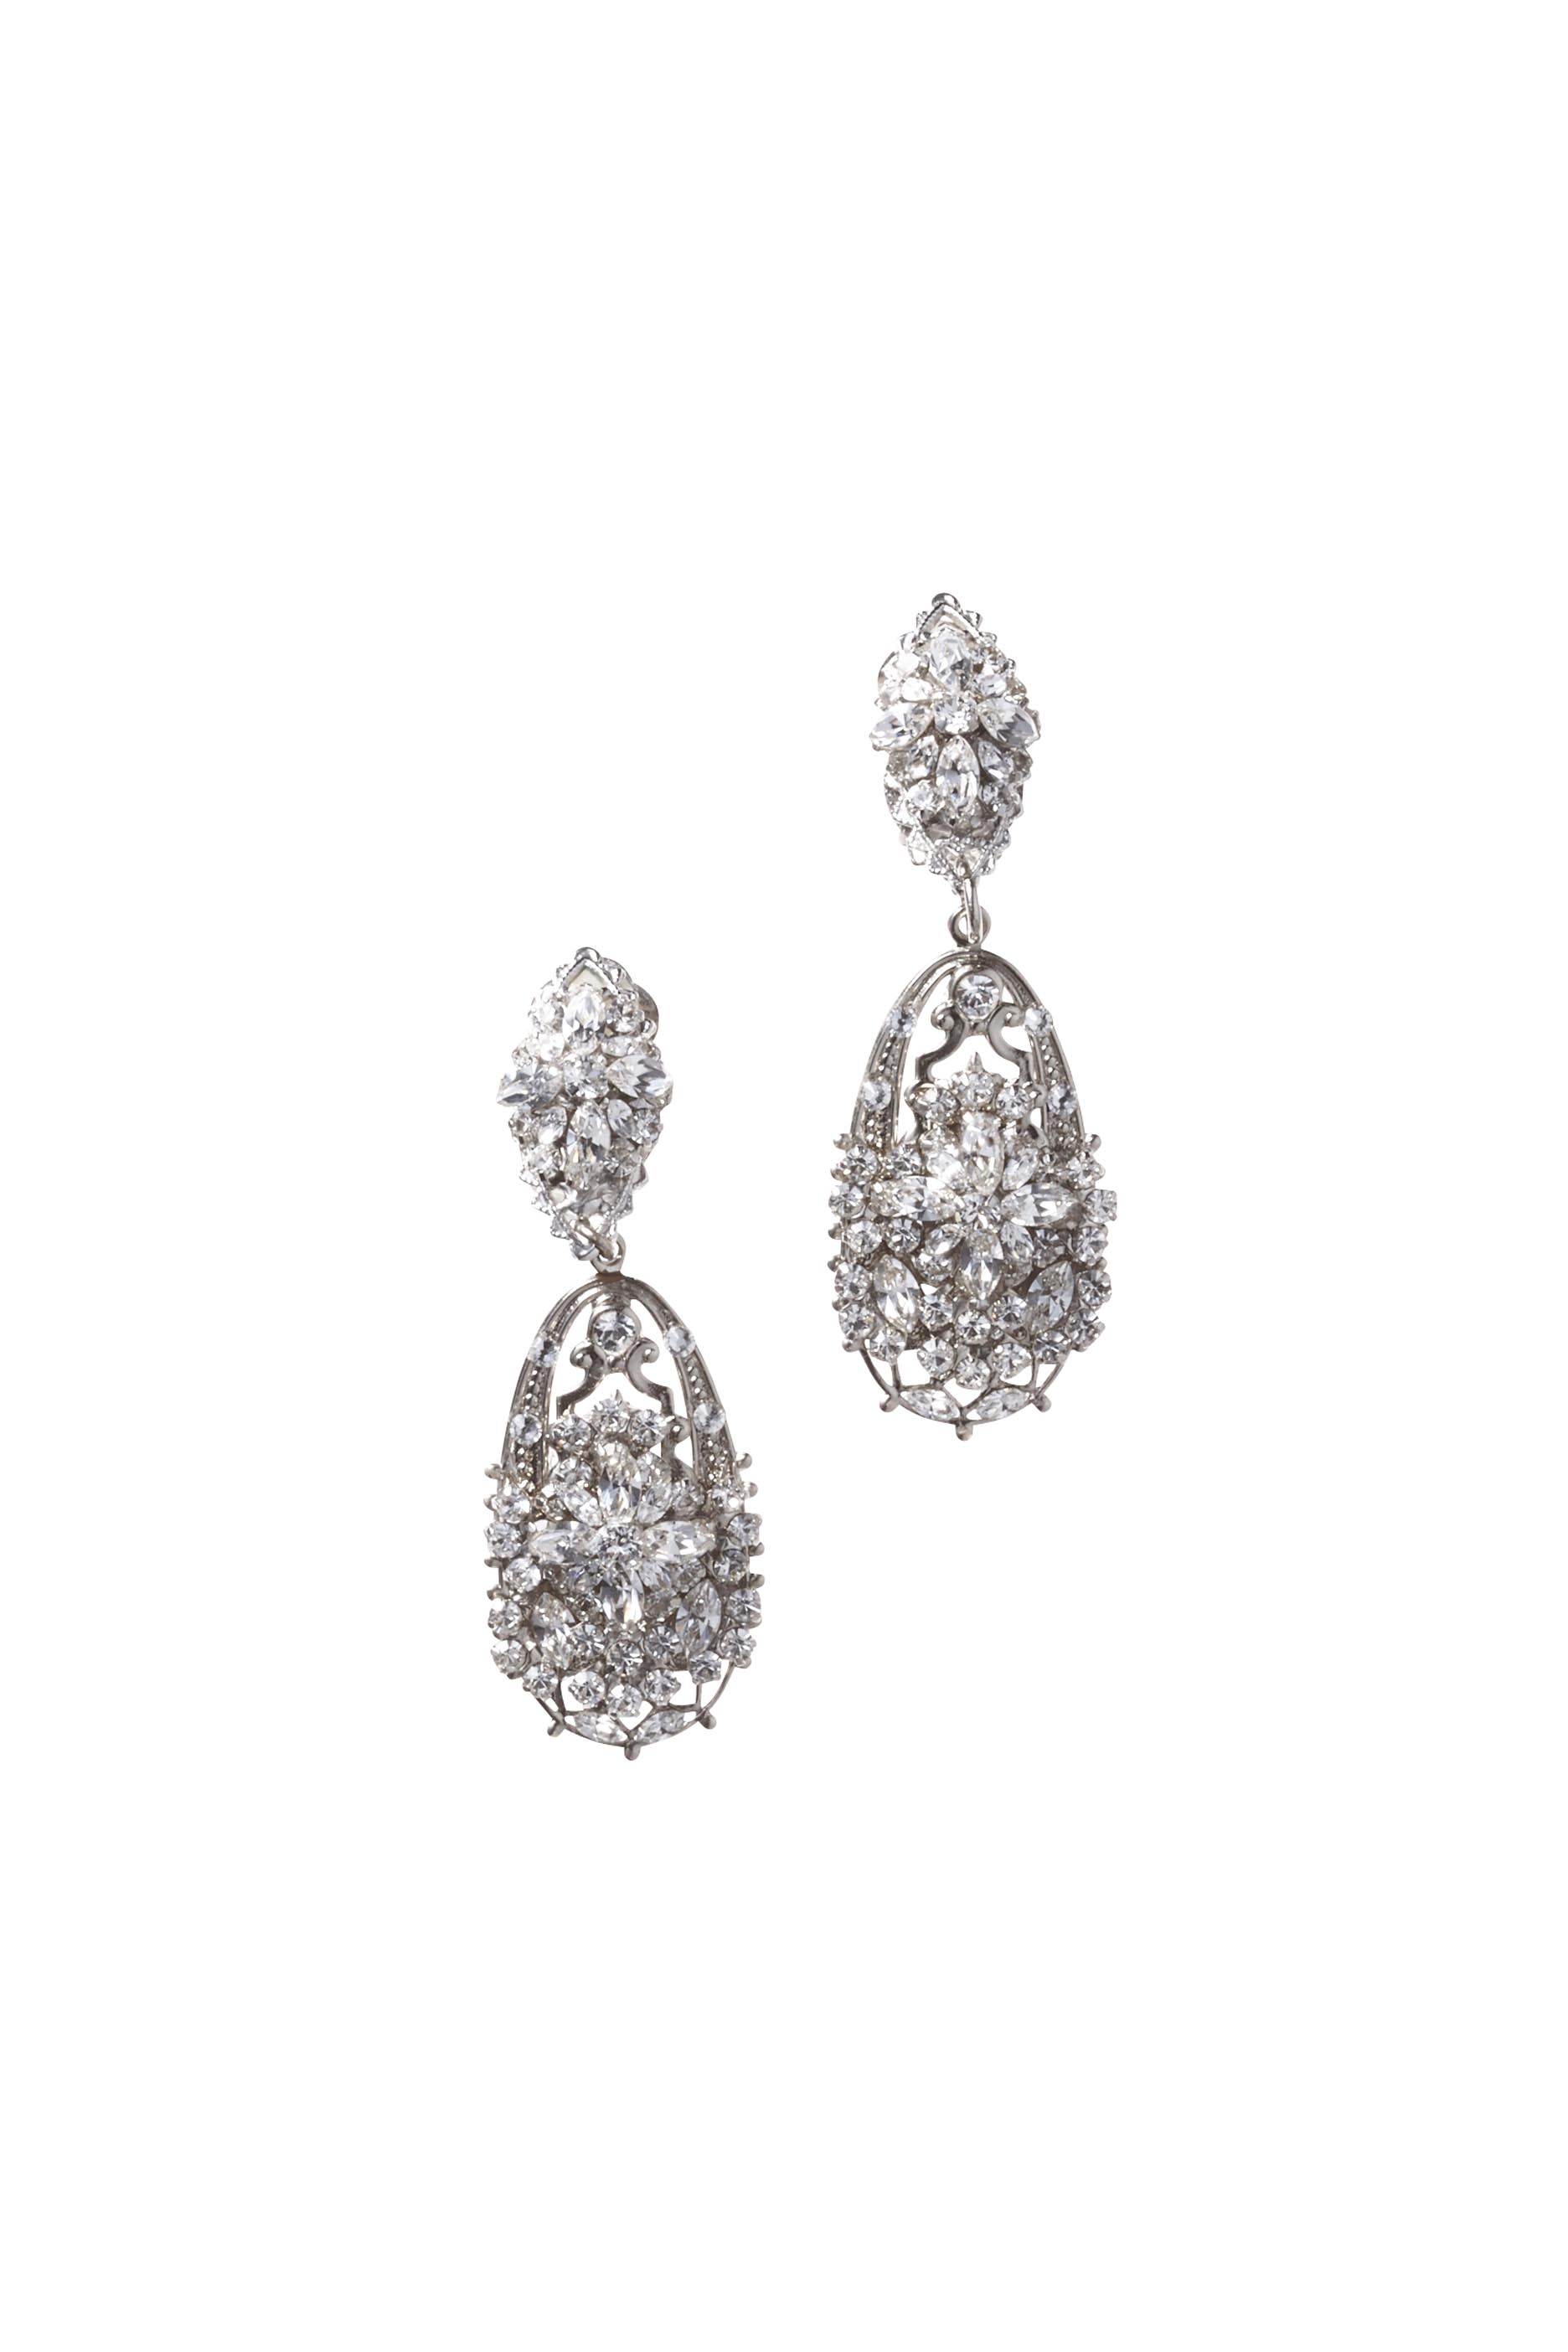 [RENTAL][Primo Earrings]by MariaElena